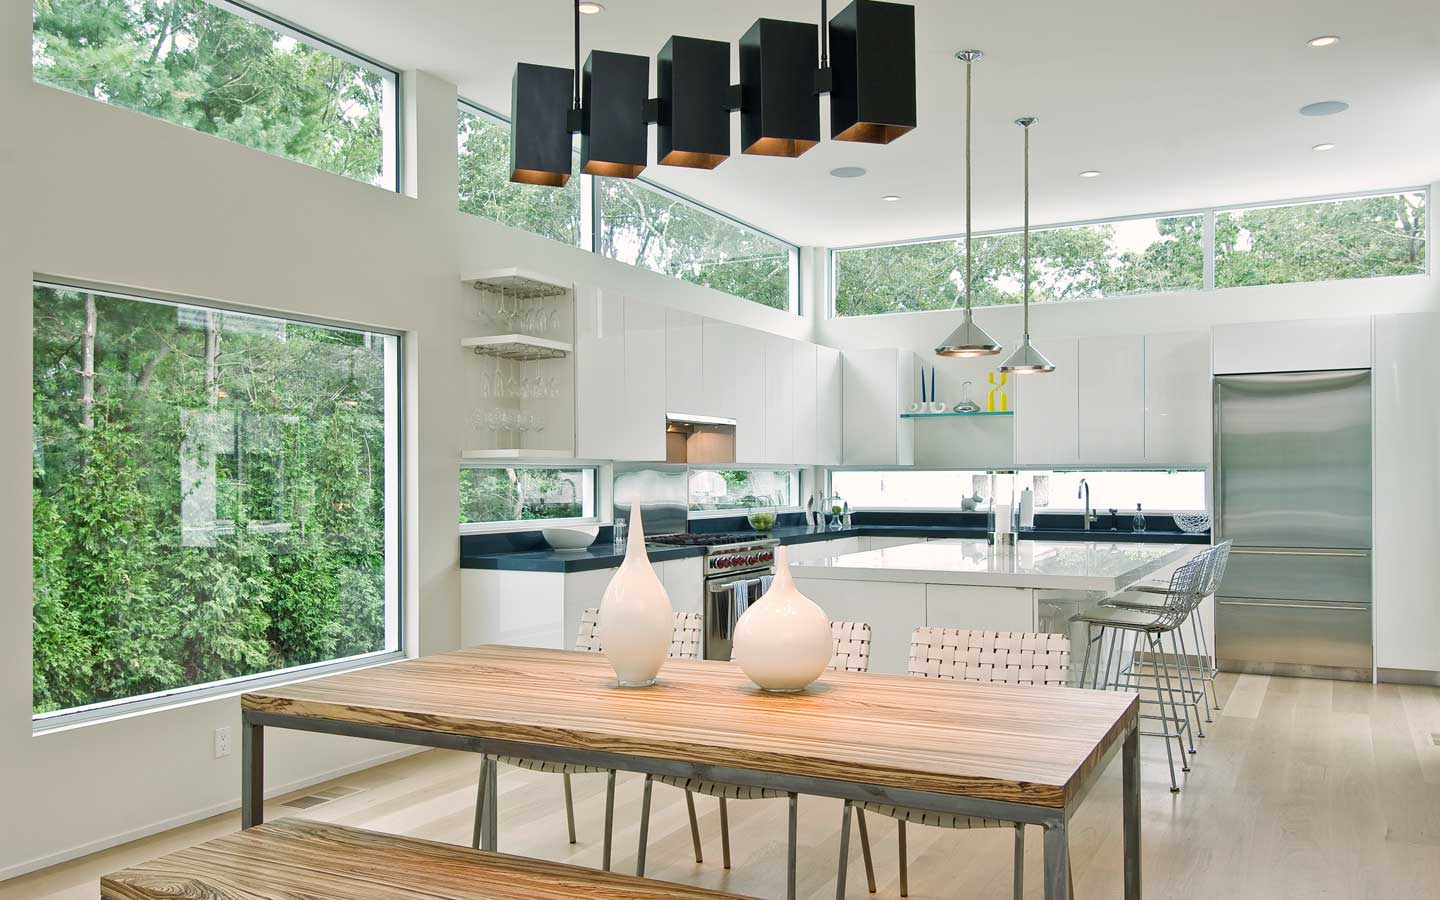 East Hampton Modern Kitchen Design2 Â« Erin Escobar Designs